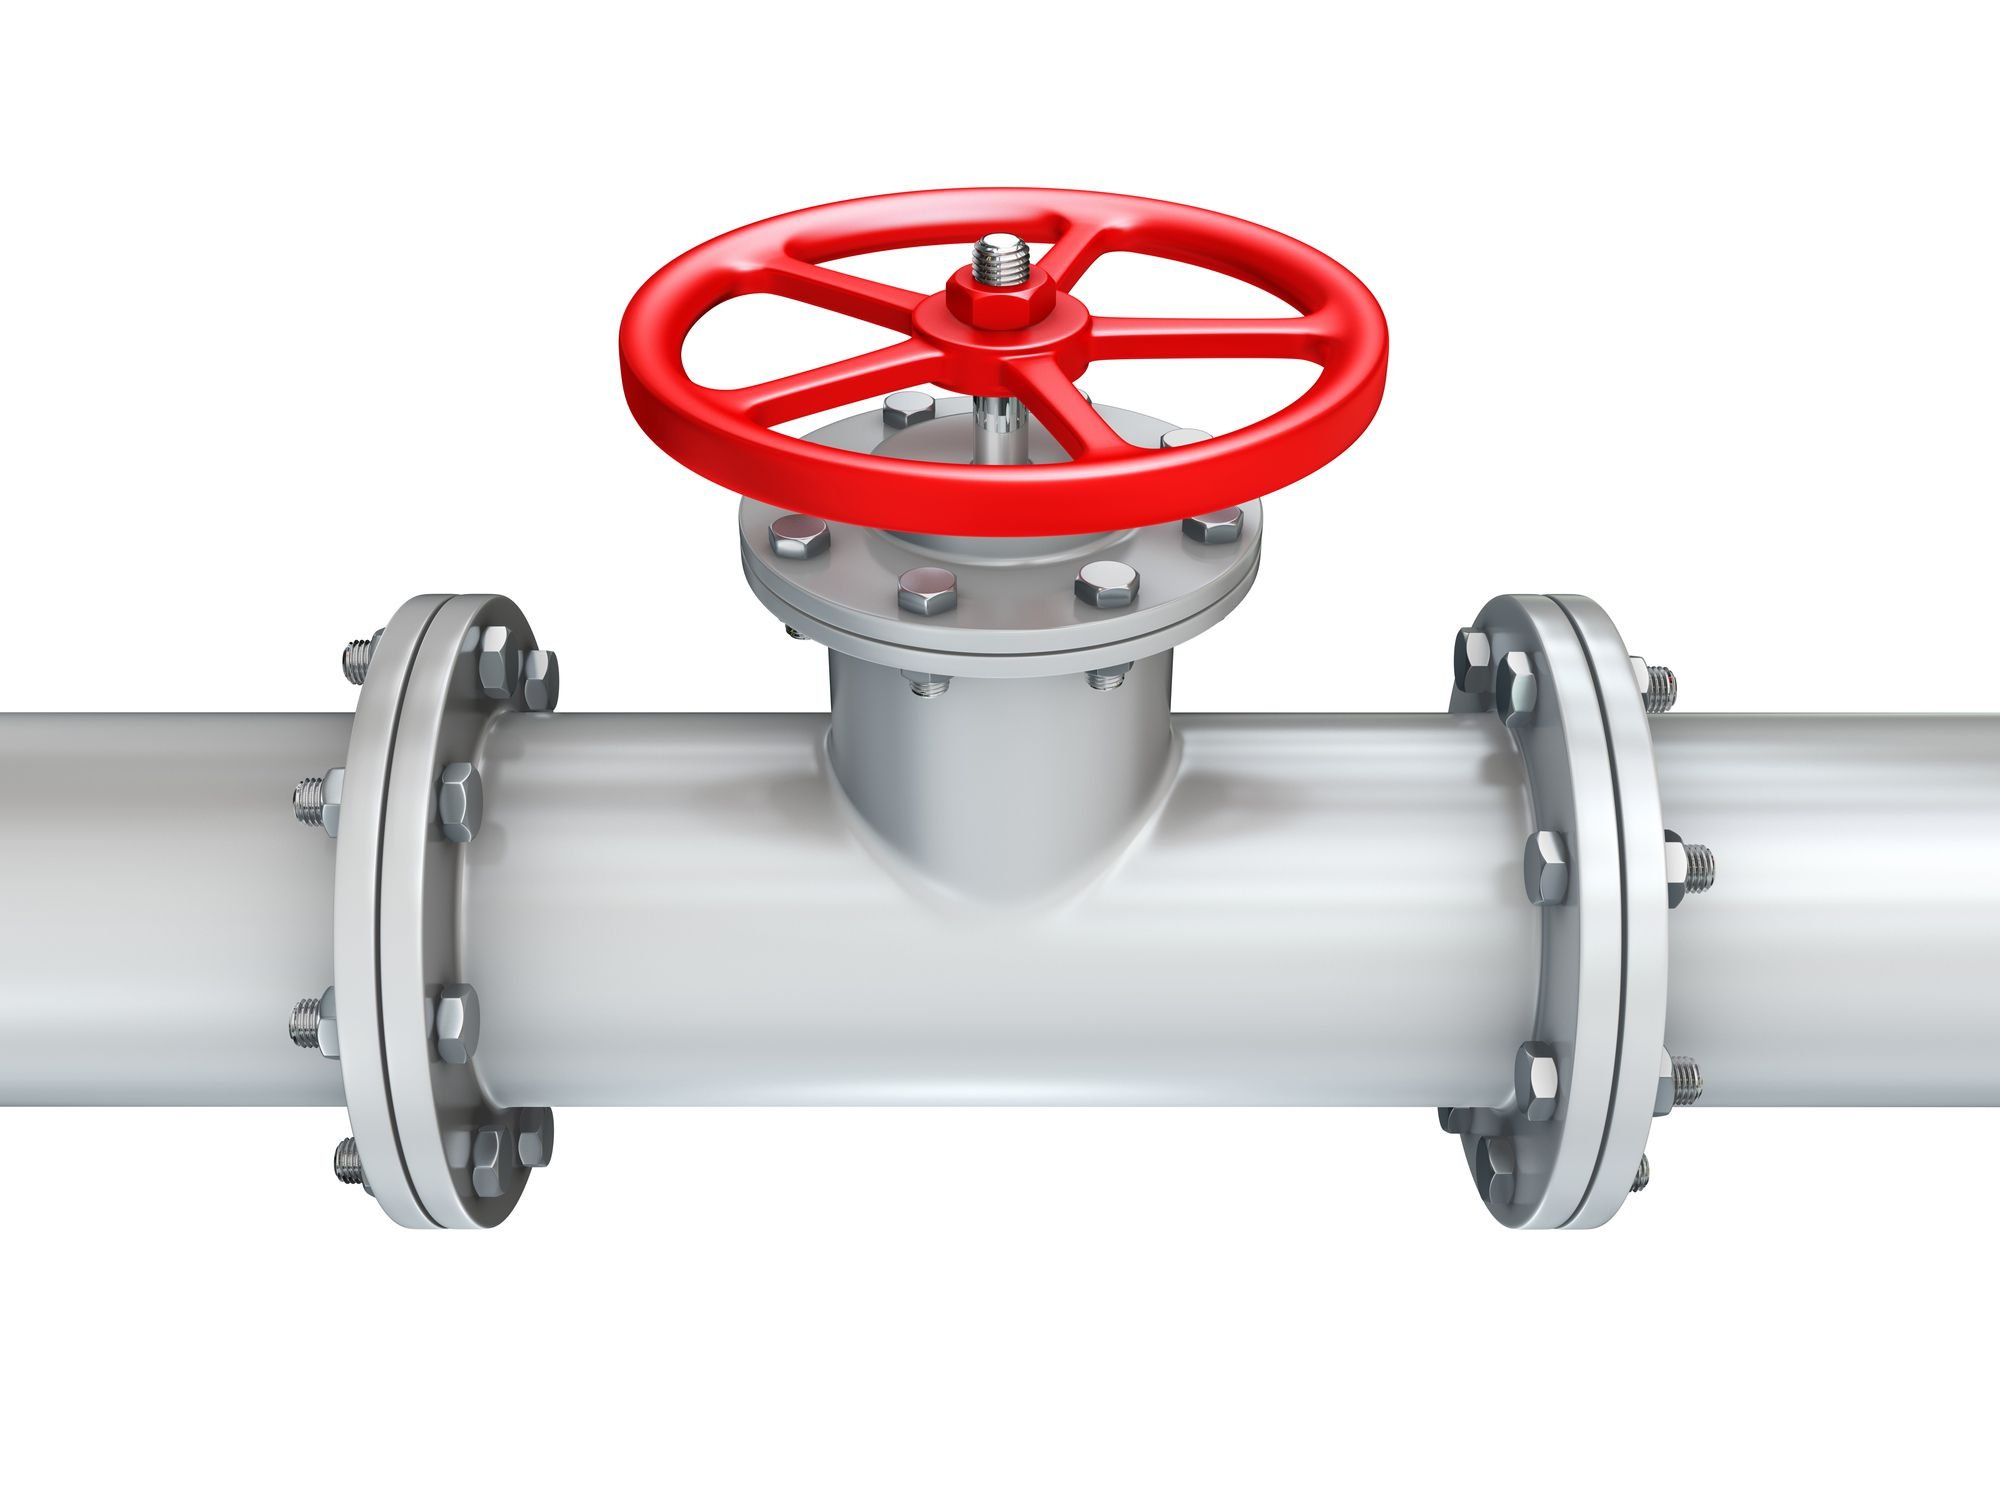 Gate valve with a red circular valve on top